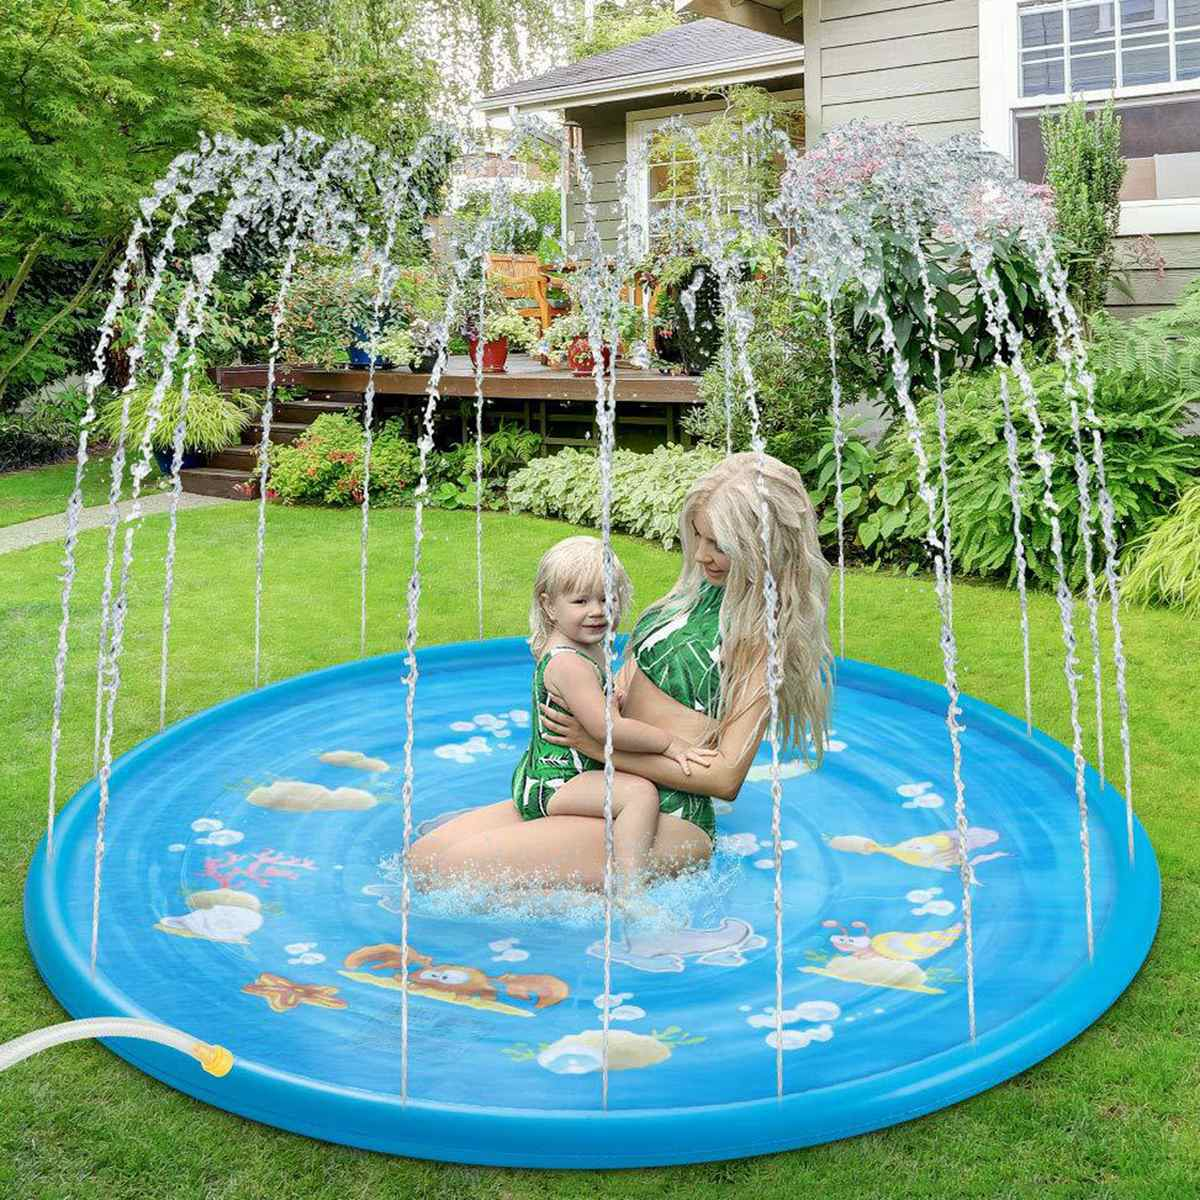 Kids Inflatable Round <font><b>Water</b></font> Splash Play <font><b>Pool</b></font> 100cm Playing Sprinkler Mat Yard Outdoor Fun Multicolour PVC Swimming <font><b>Pools</b></font> image